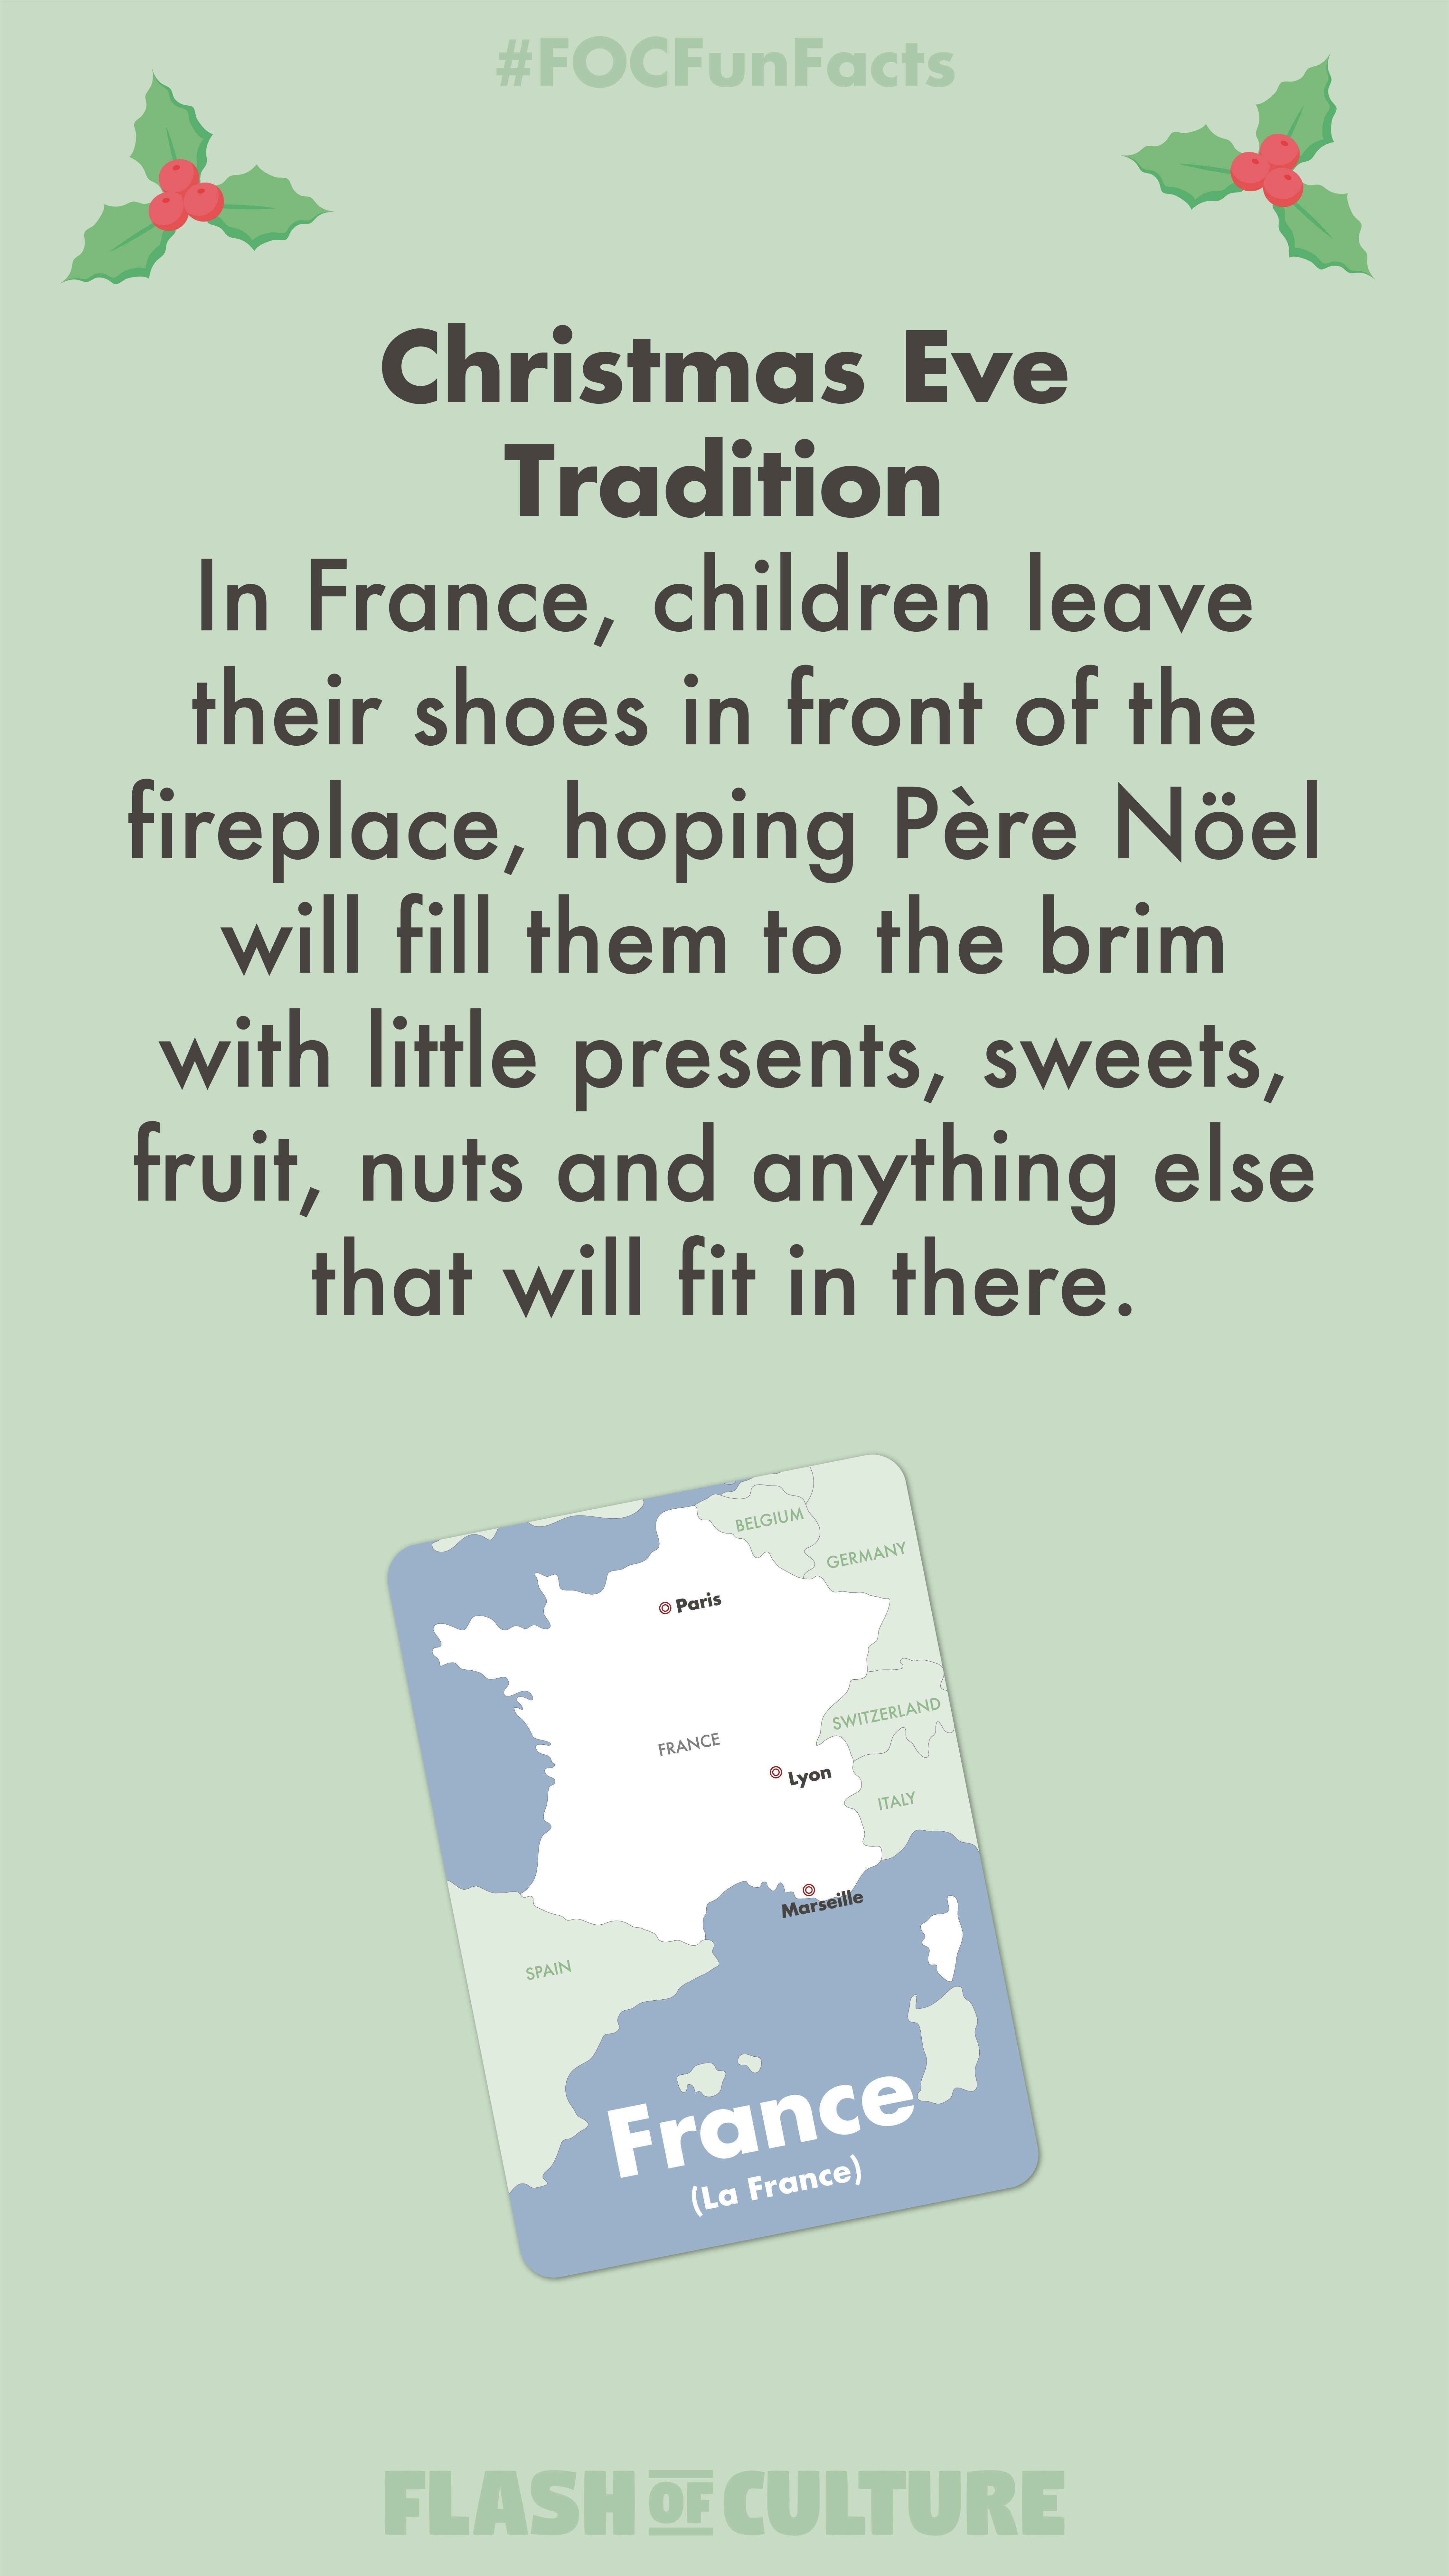 A Fun Christmas Eve Fun Fact Today In France Children